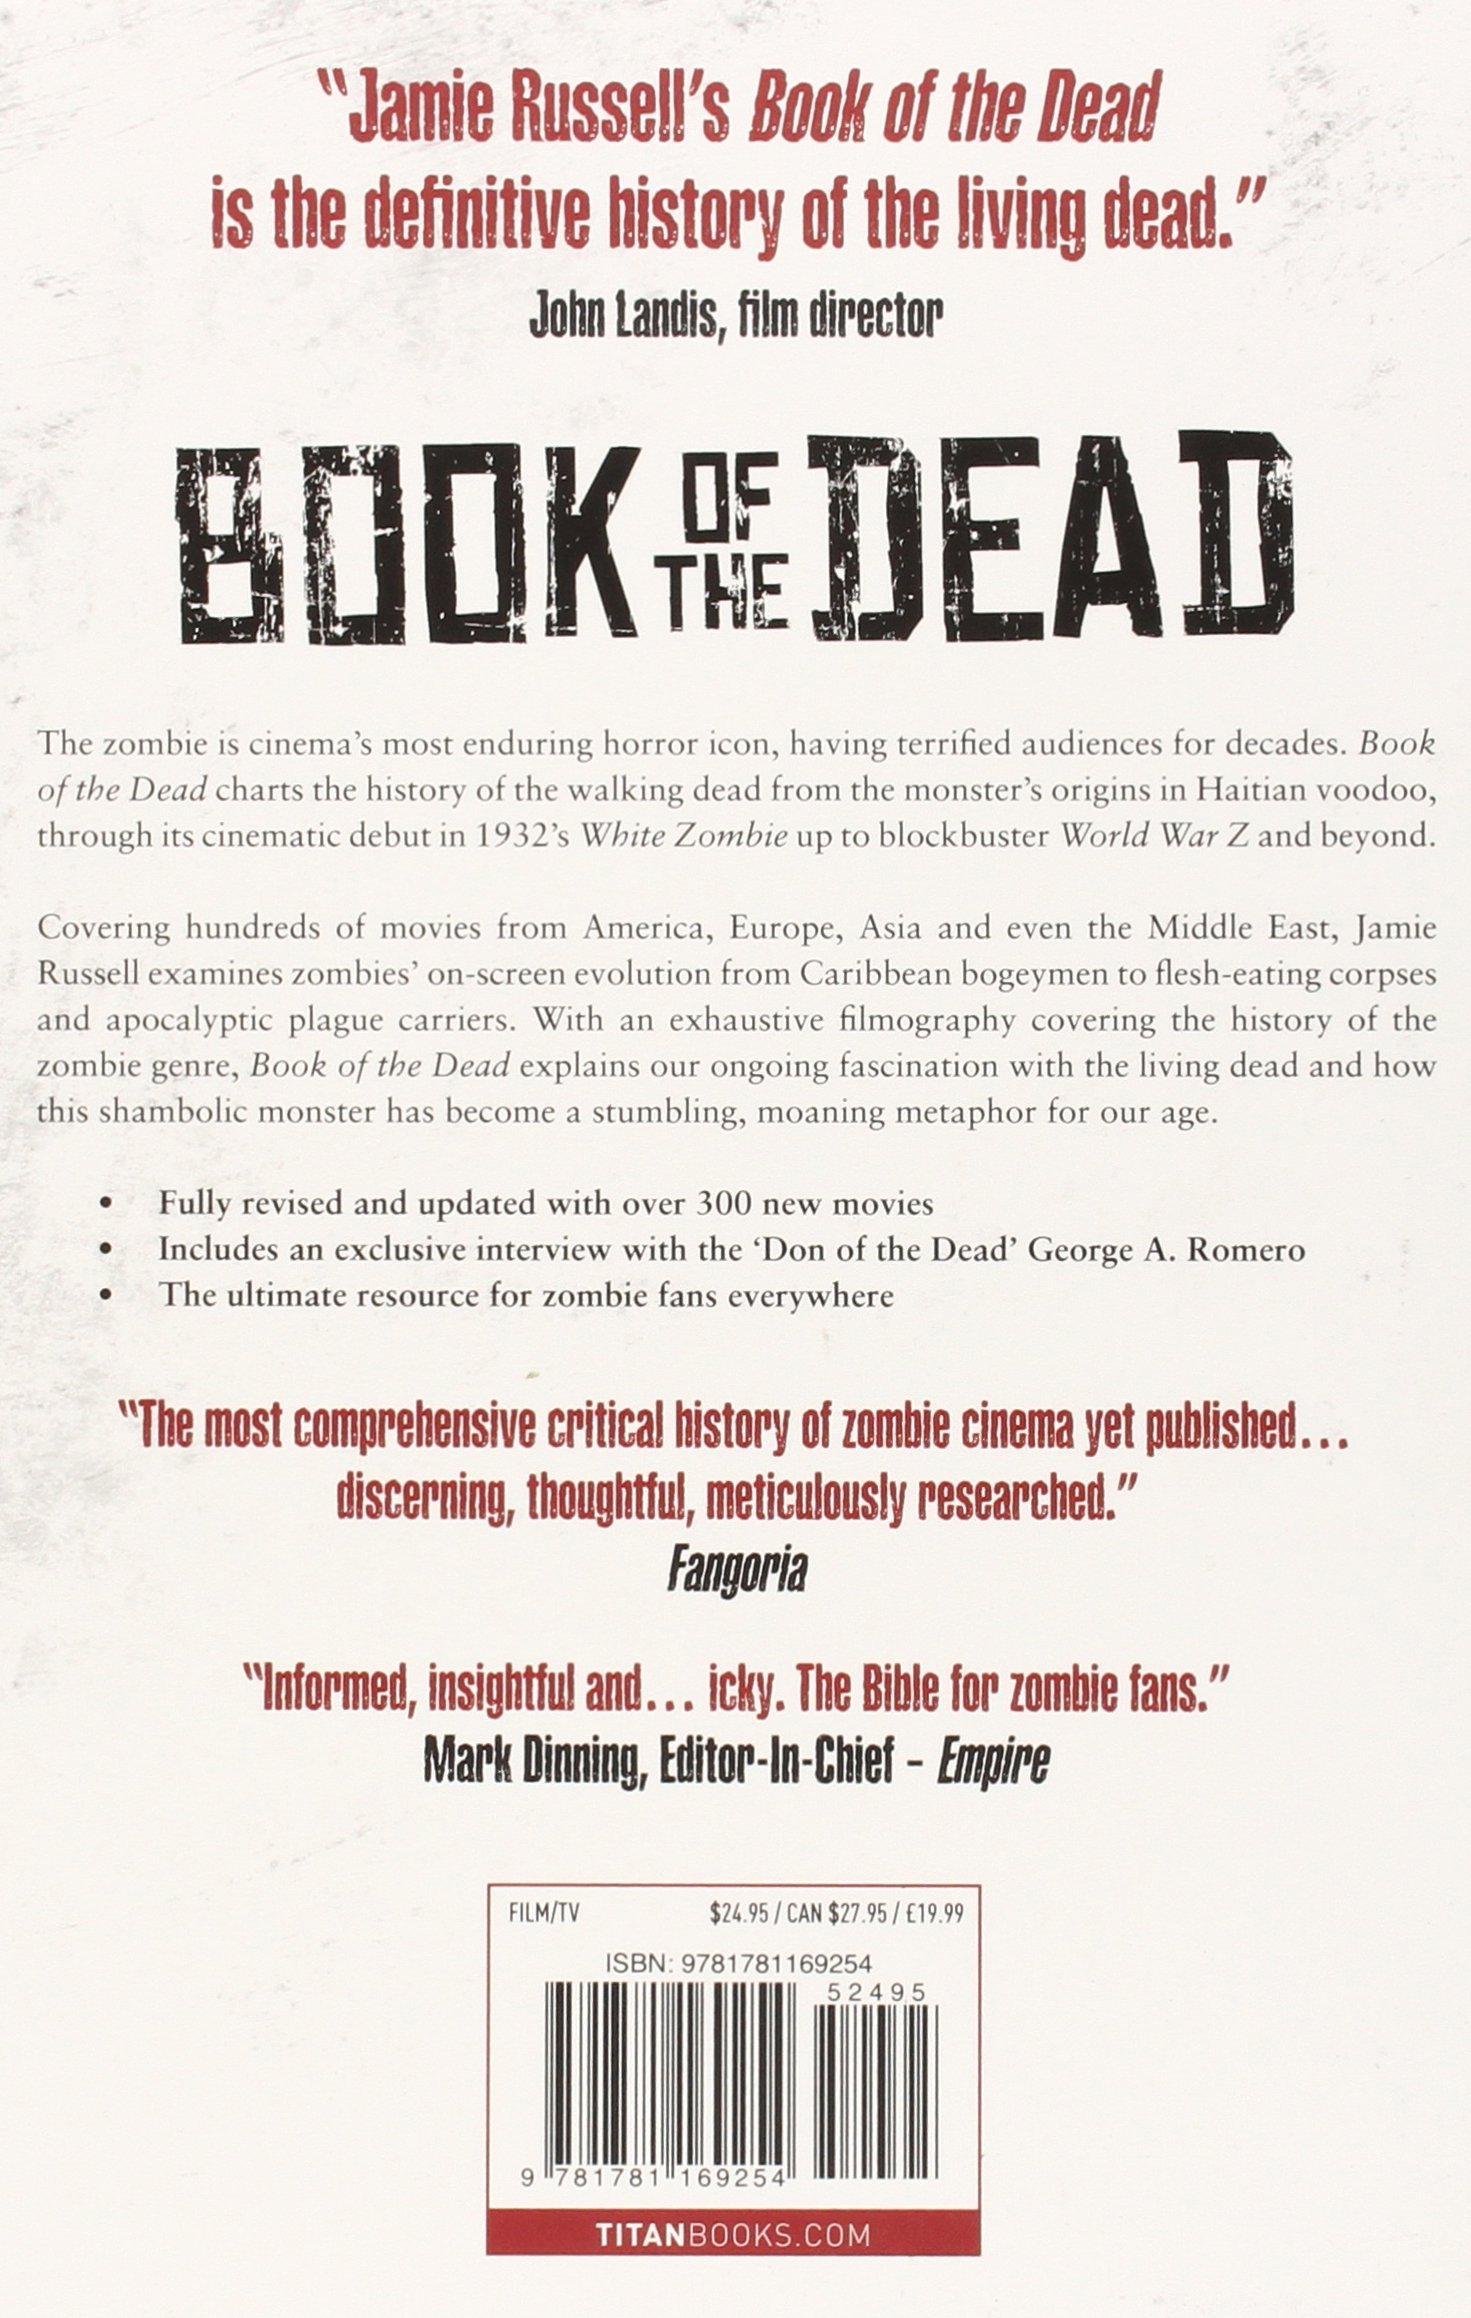 book of the dead the complete history of zombie cinema updated fully revised edition